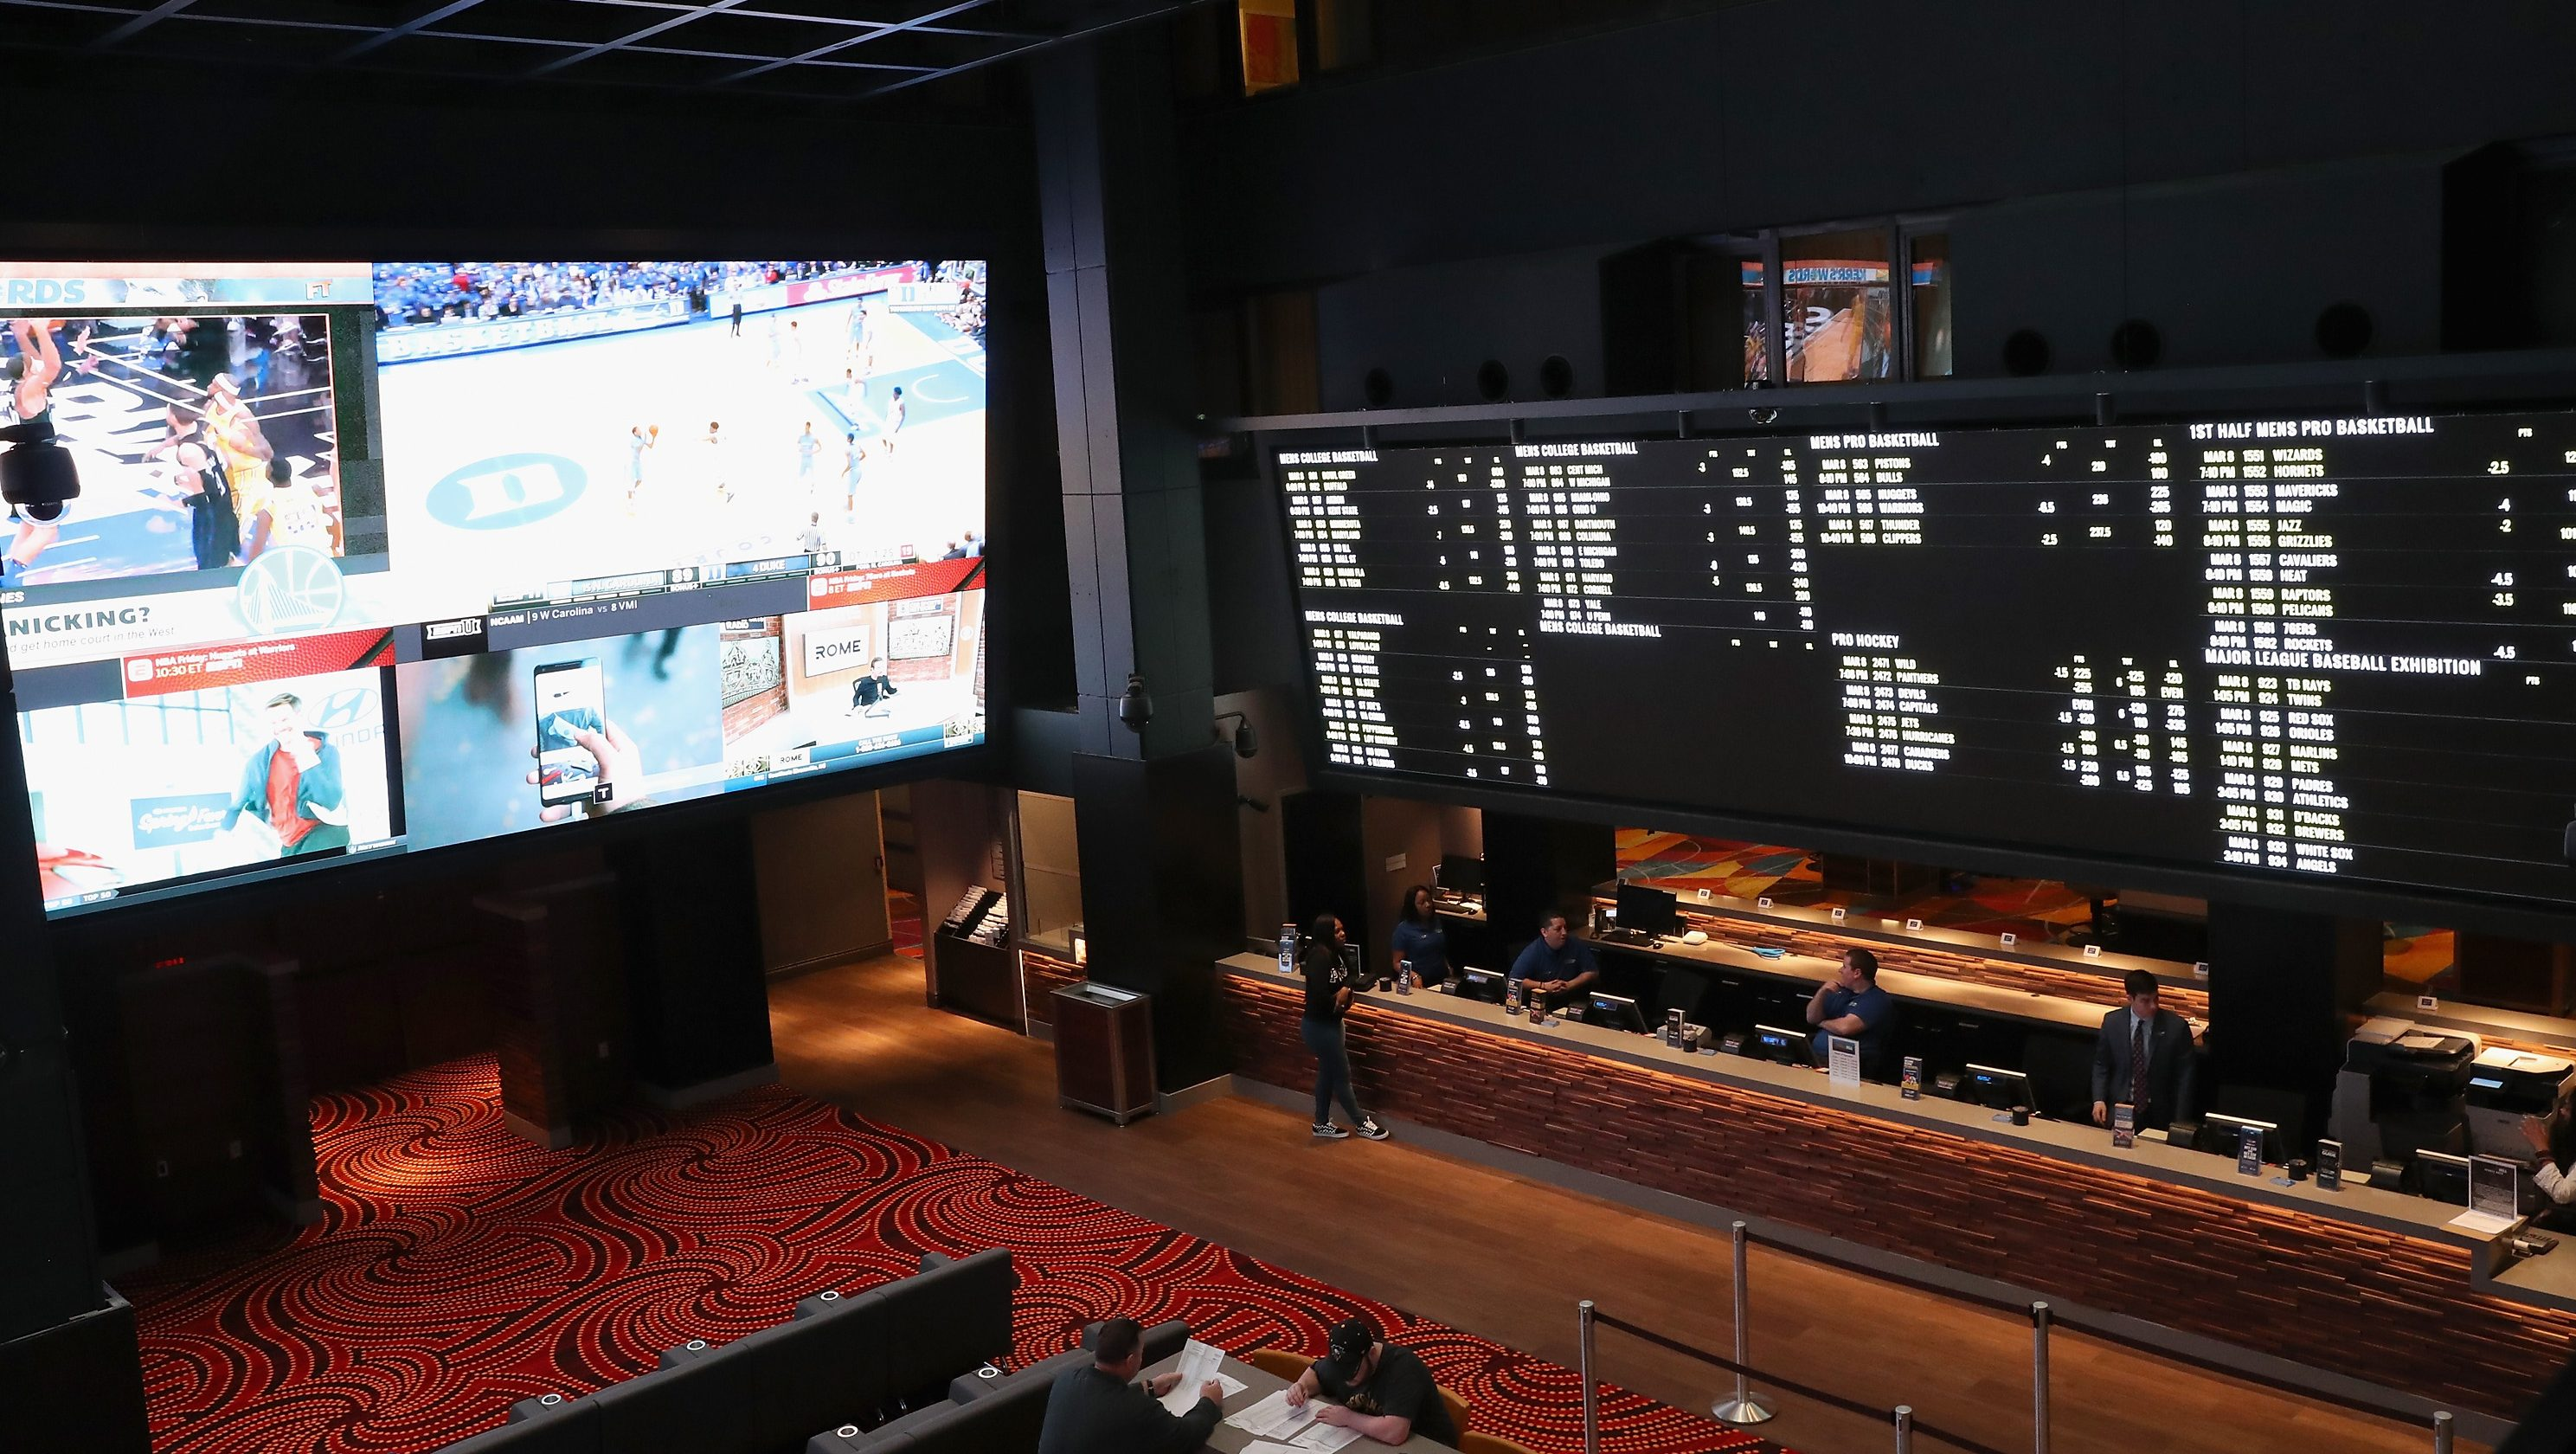 Ncaa tournament first round betting lines abetting definition law of multiple proportions